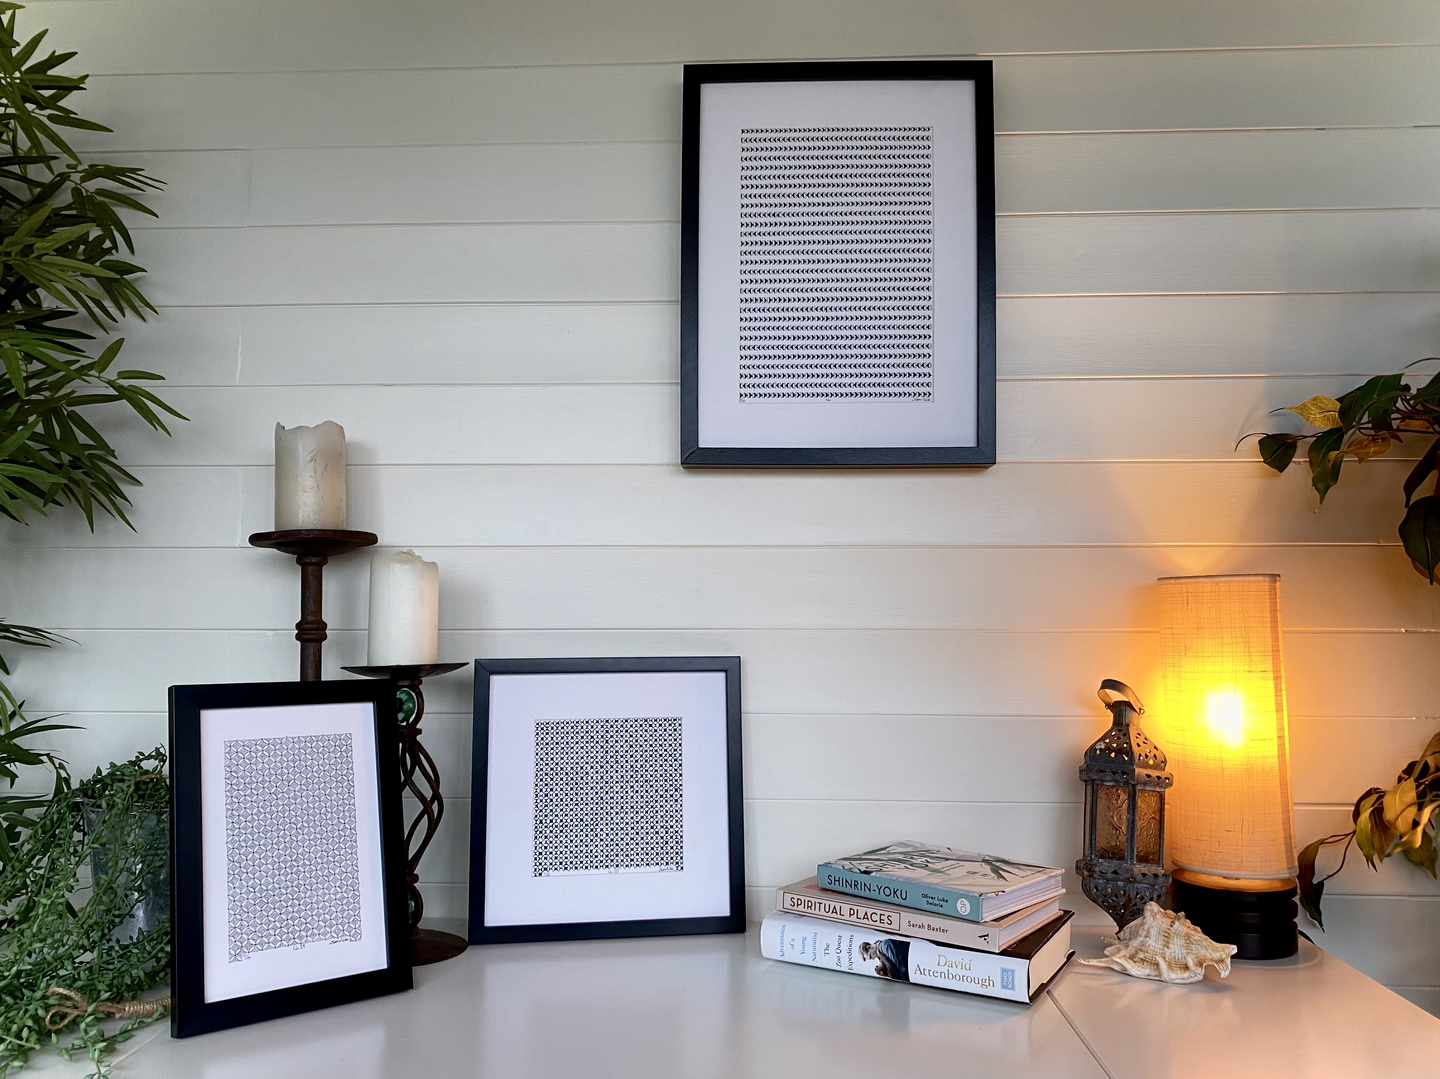 Dandan Design - Framed Wall Art